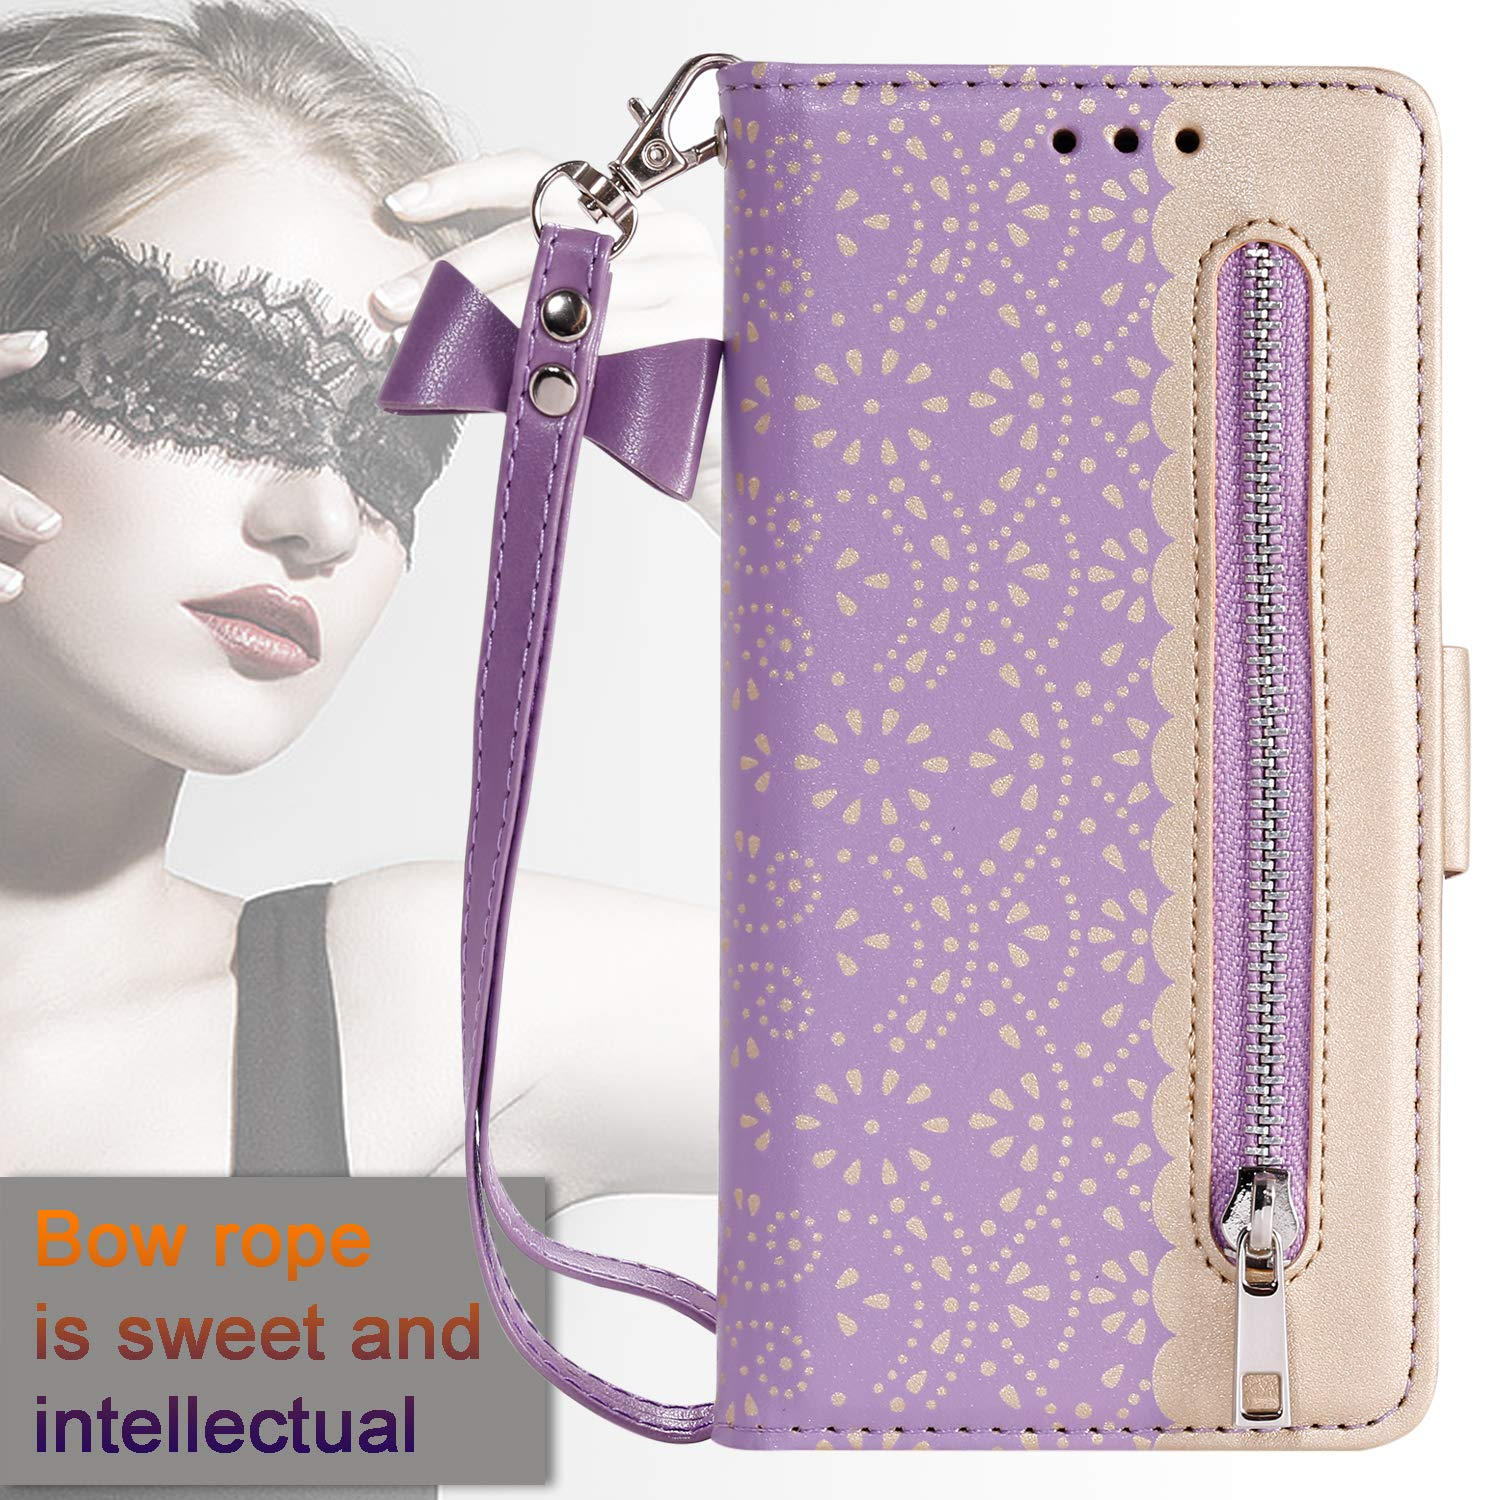 Tznzxm Galaxy Note 10 5G Case, Luxury Lace Design PU Leather Magnetic Zipper Wallet Protective Flip Kickstand Cover with Credit Card Slots Butterfly Clasp Wrist Wallet for Samsung Note 10 5G Purple by Tznzxm